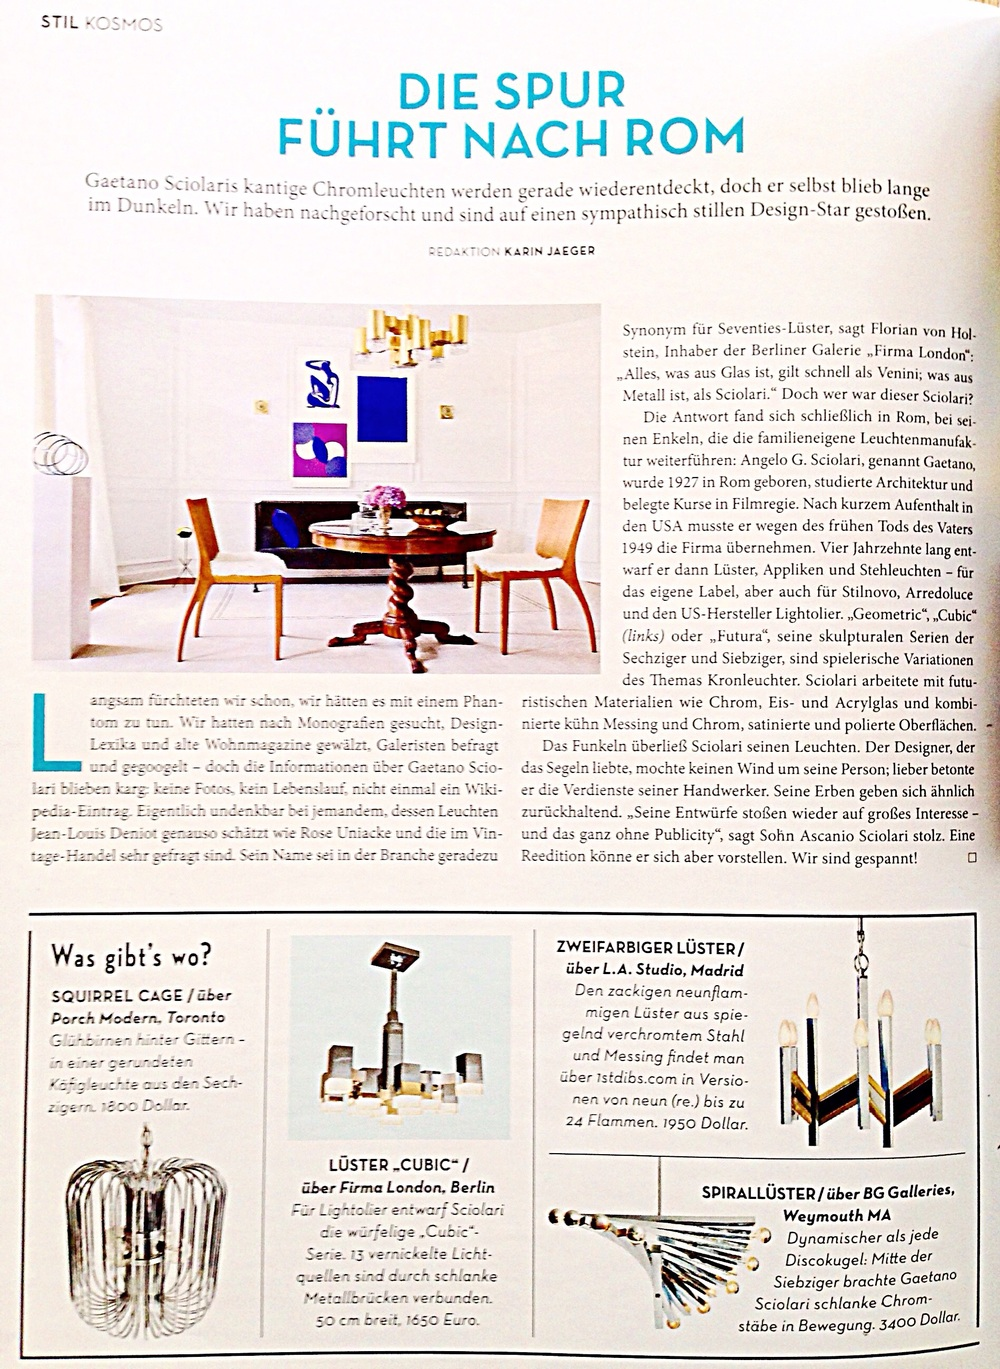 Raji RM Interior Designer Washington DC New York Architectural Digest AD Germany